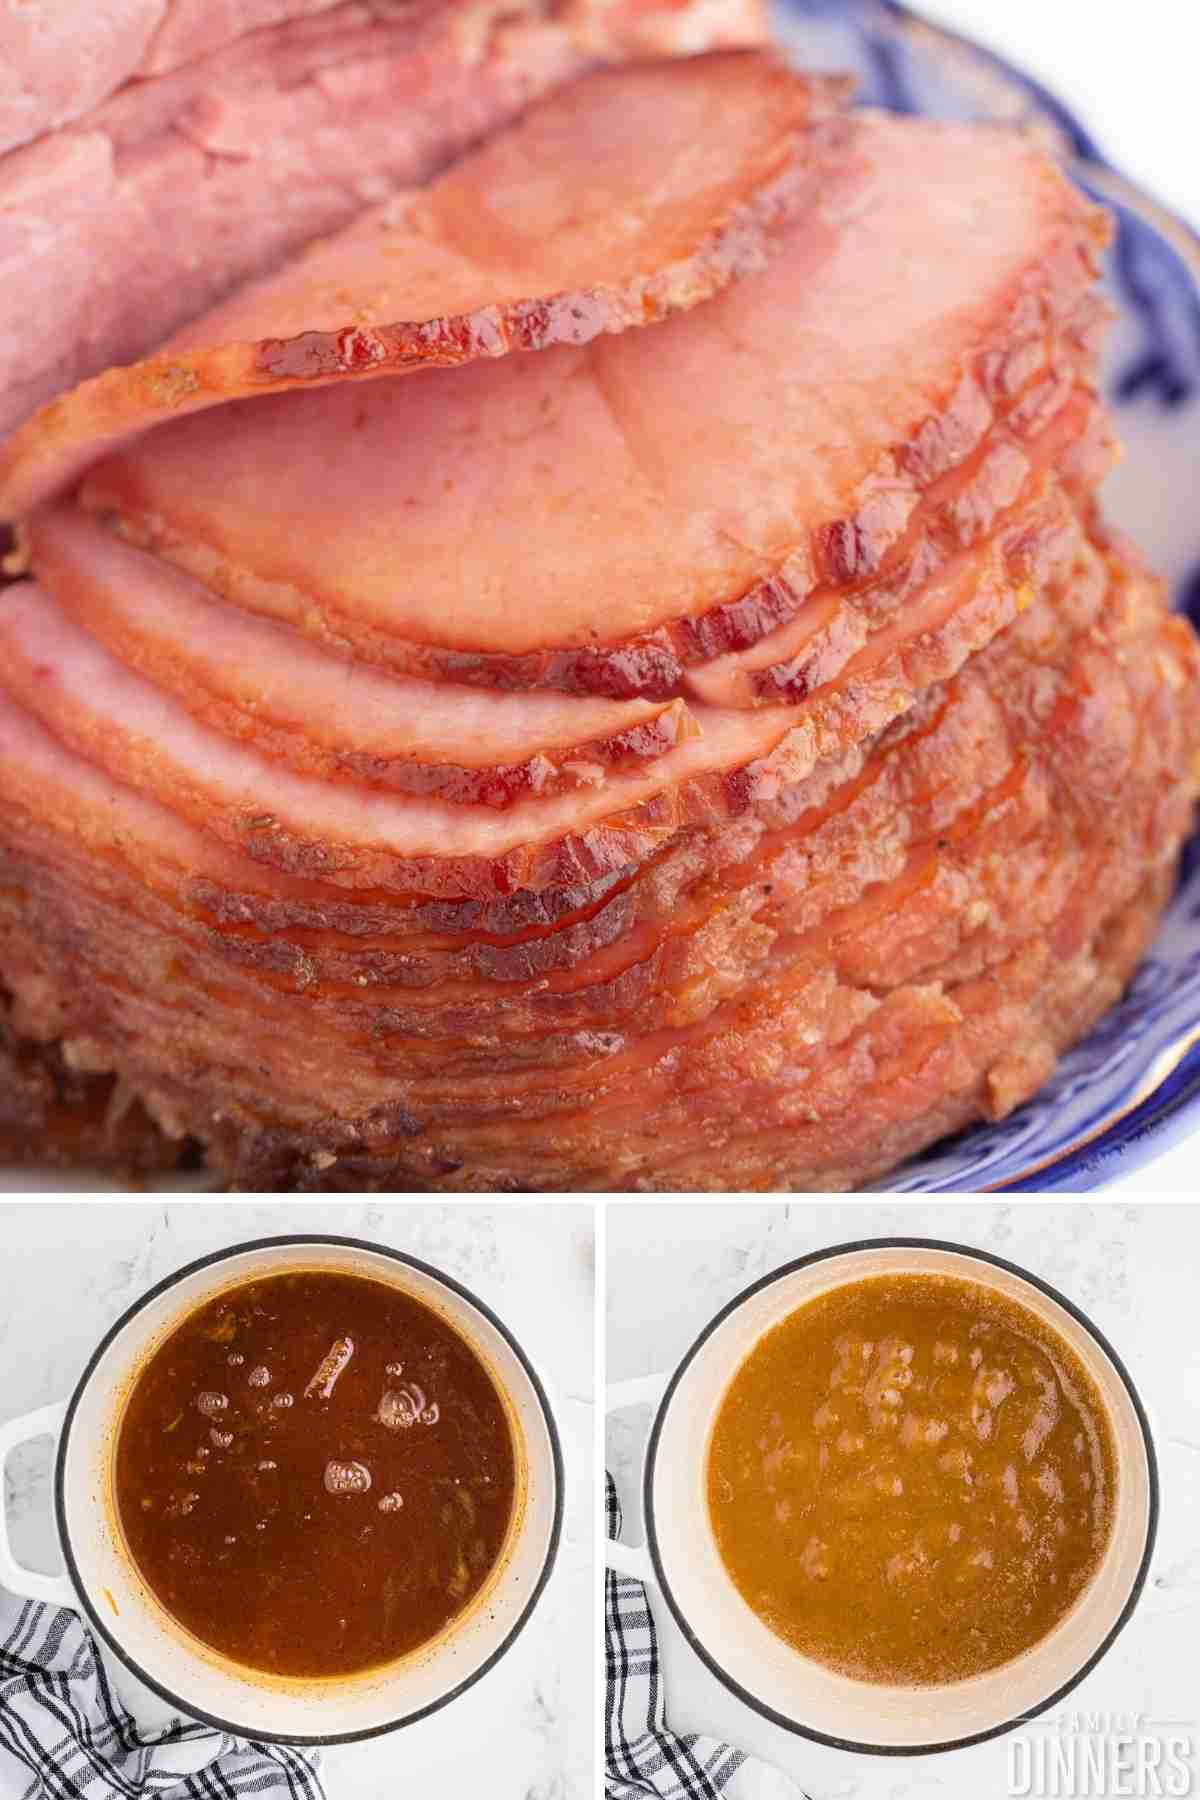 Image collage: 1- sliced ham stacked on a serving plate. 2 - ham sauce in sauce pan. 3 - Ham glaze in sauce pan